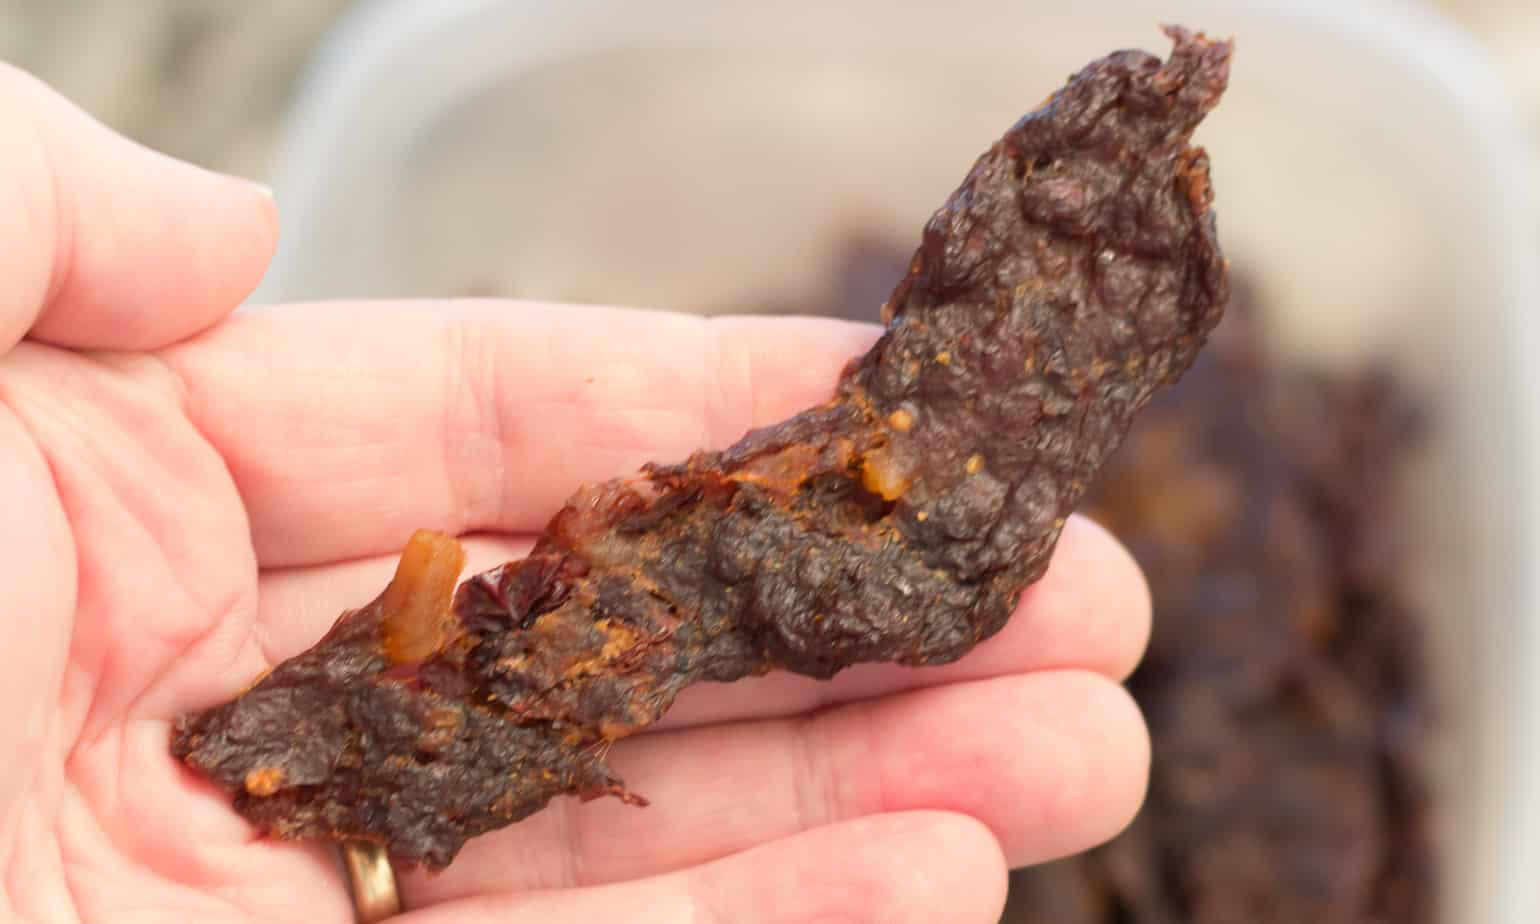 Homemade Venison Jerky: A delicious recipe for pemmican style homemade venison jerky that will please anyone looking for a high protein paleo friendly snack.